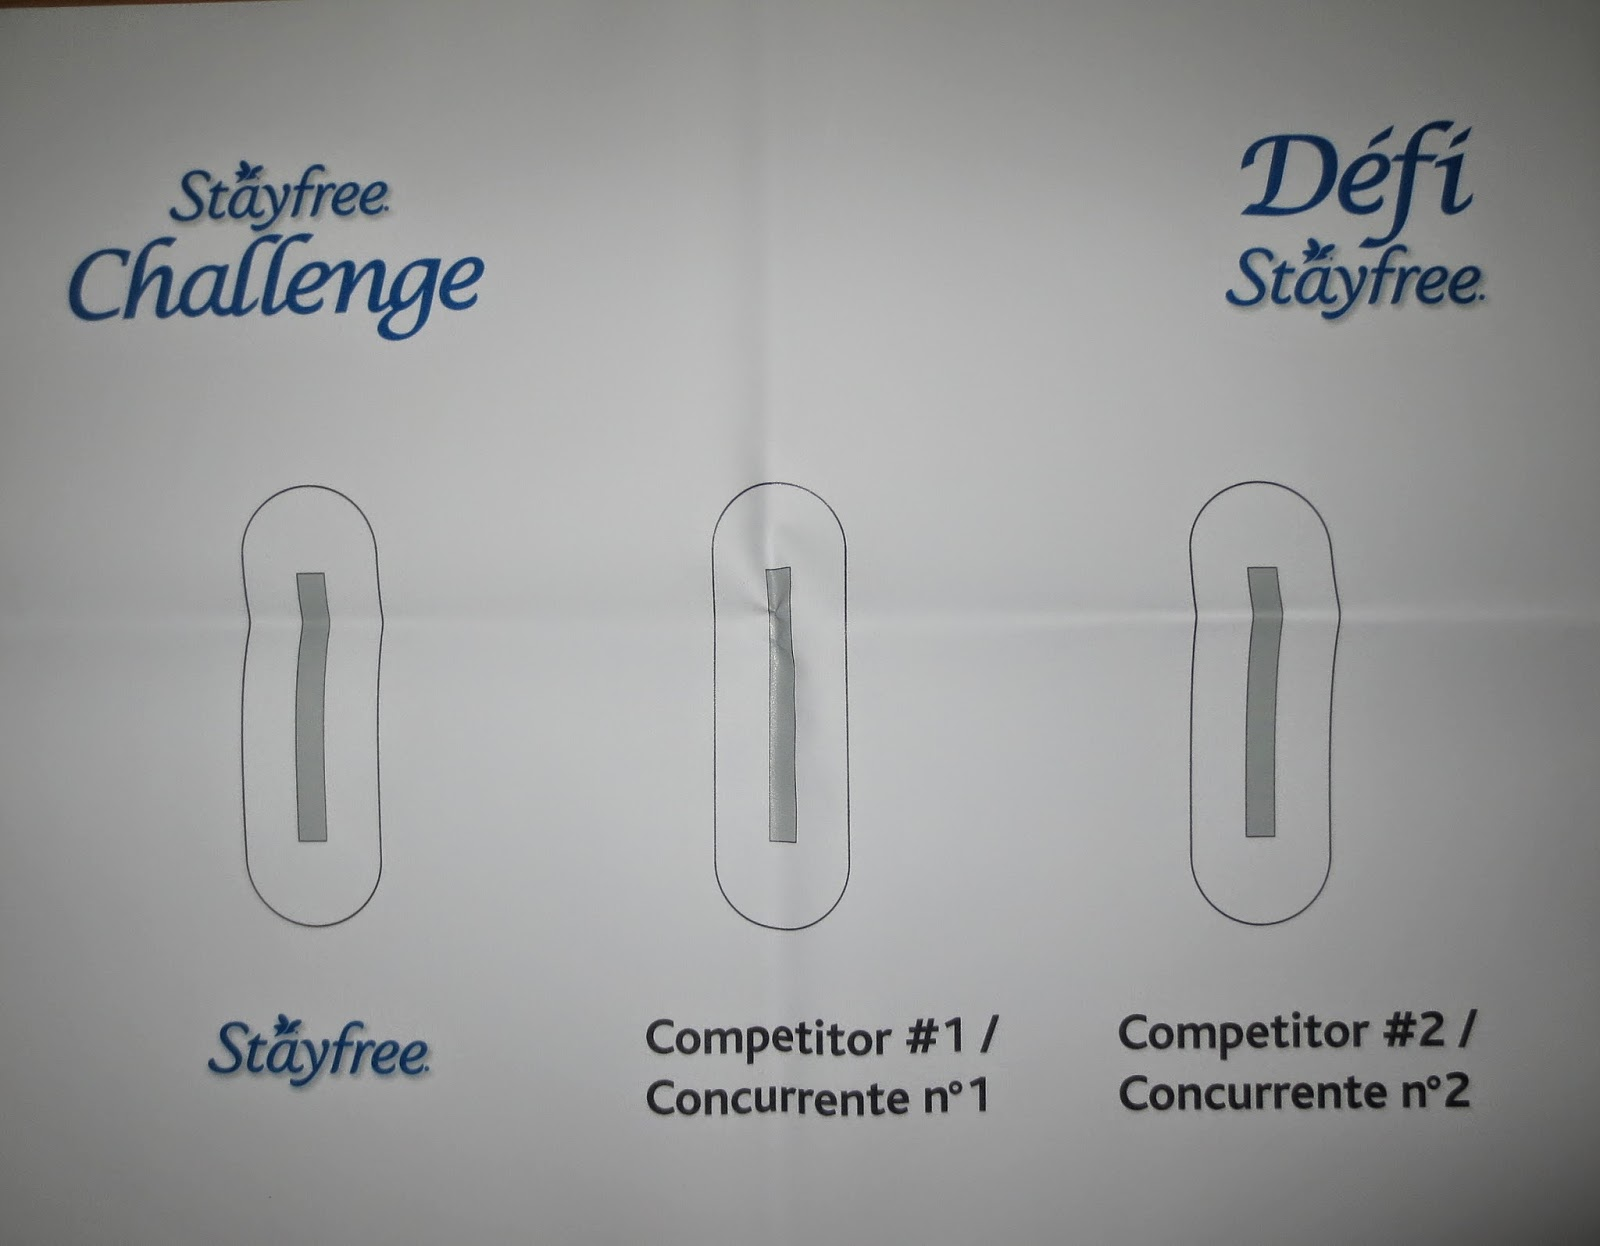 Stayfree Challenge